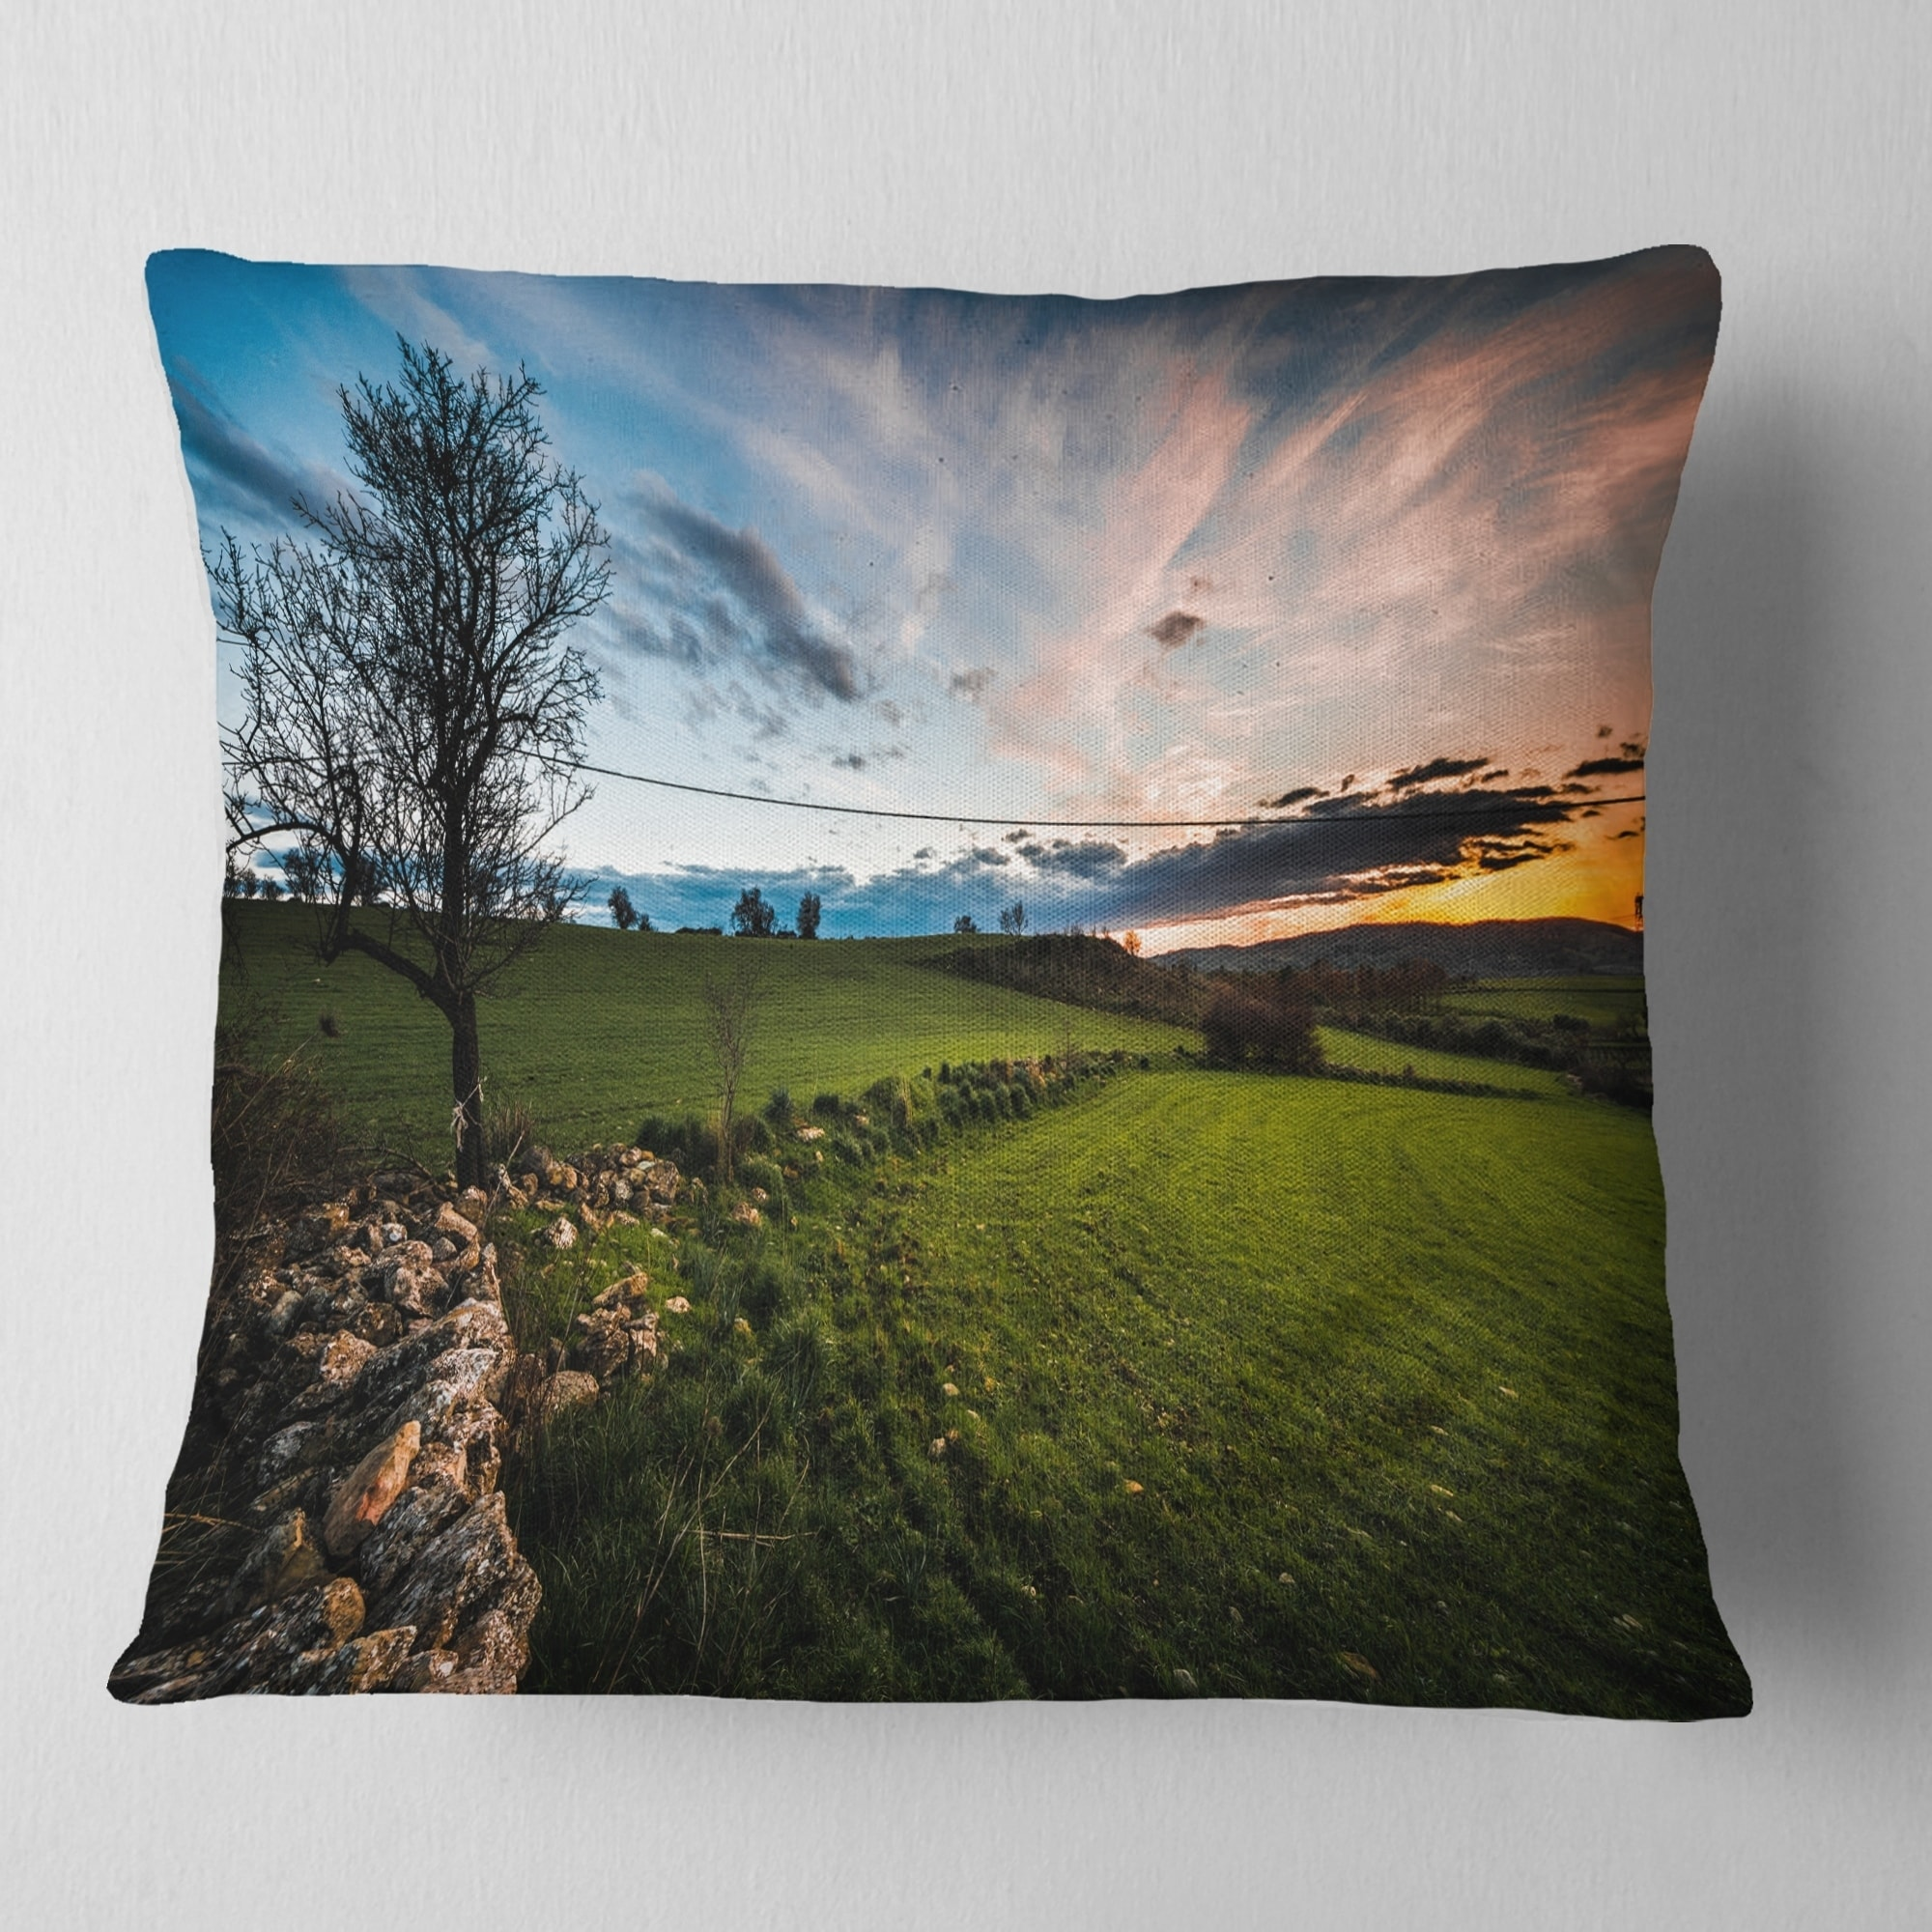 Insert Side Sofa Throw Pillow X 16 In Designart Cu14307 16 16 Beautiful Green Meadow In Sardinia Landscape Printed Cushion Cover For Living Room Home Kitchen Bedding